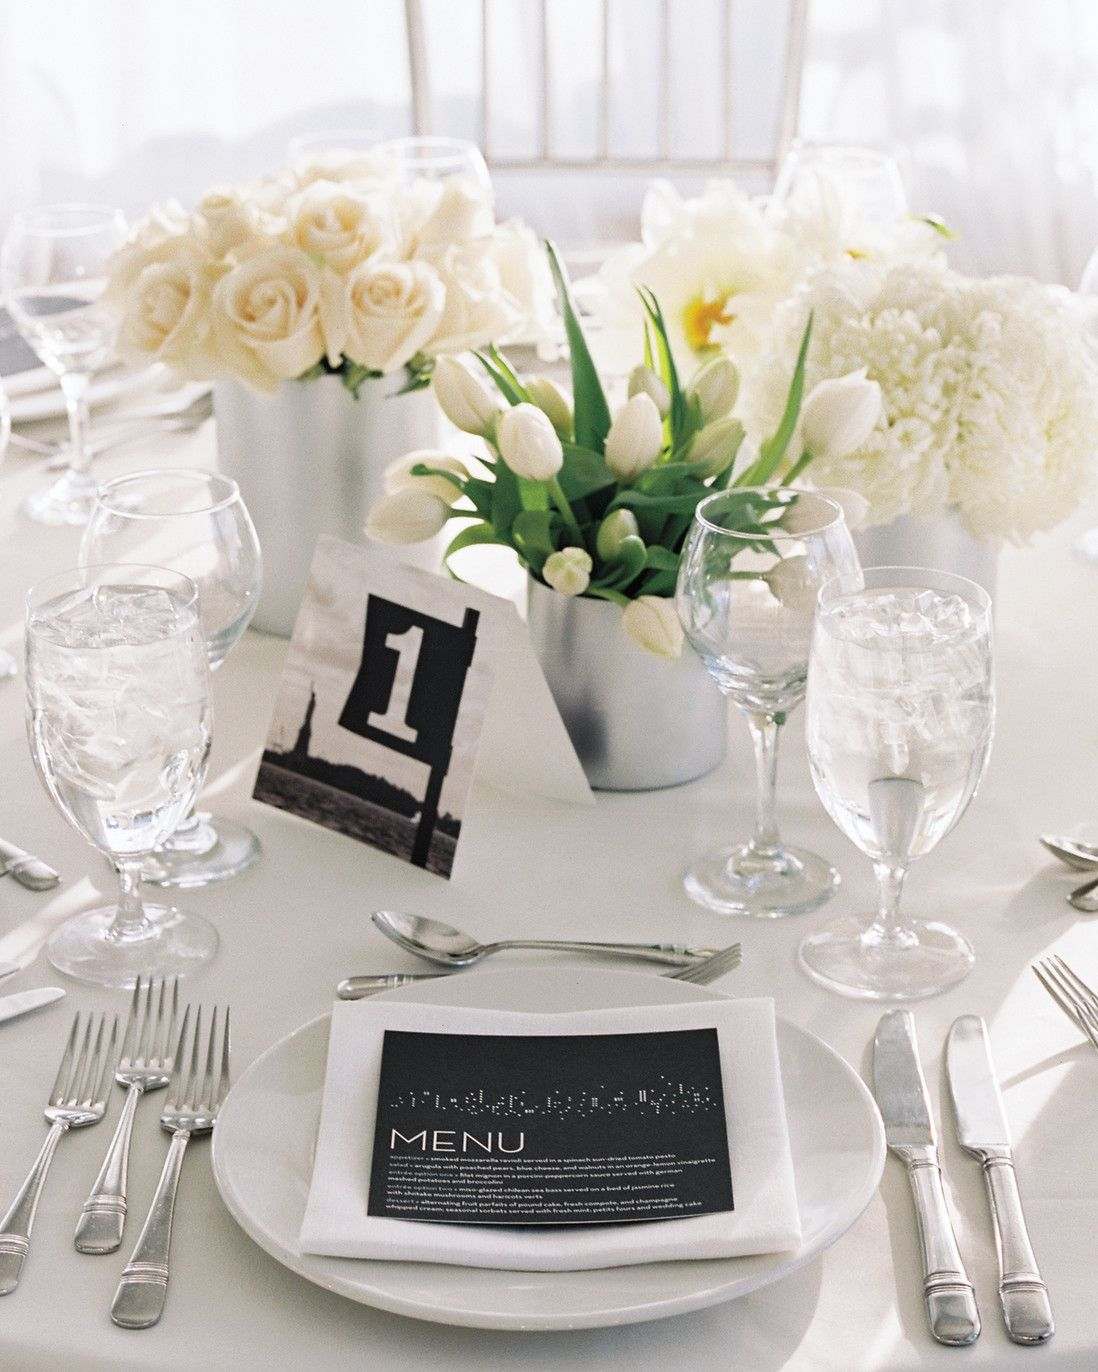 79 White Wedding Centerpieces | Glass vessel, White roses and Florals